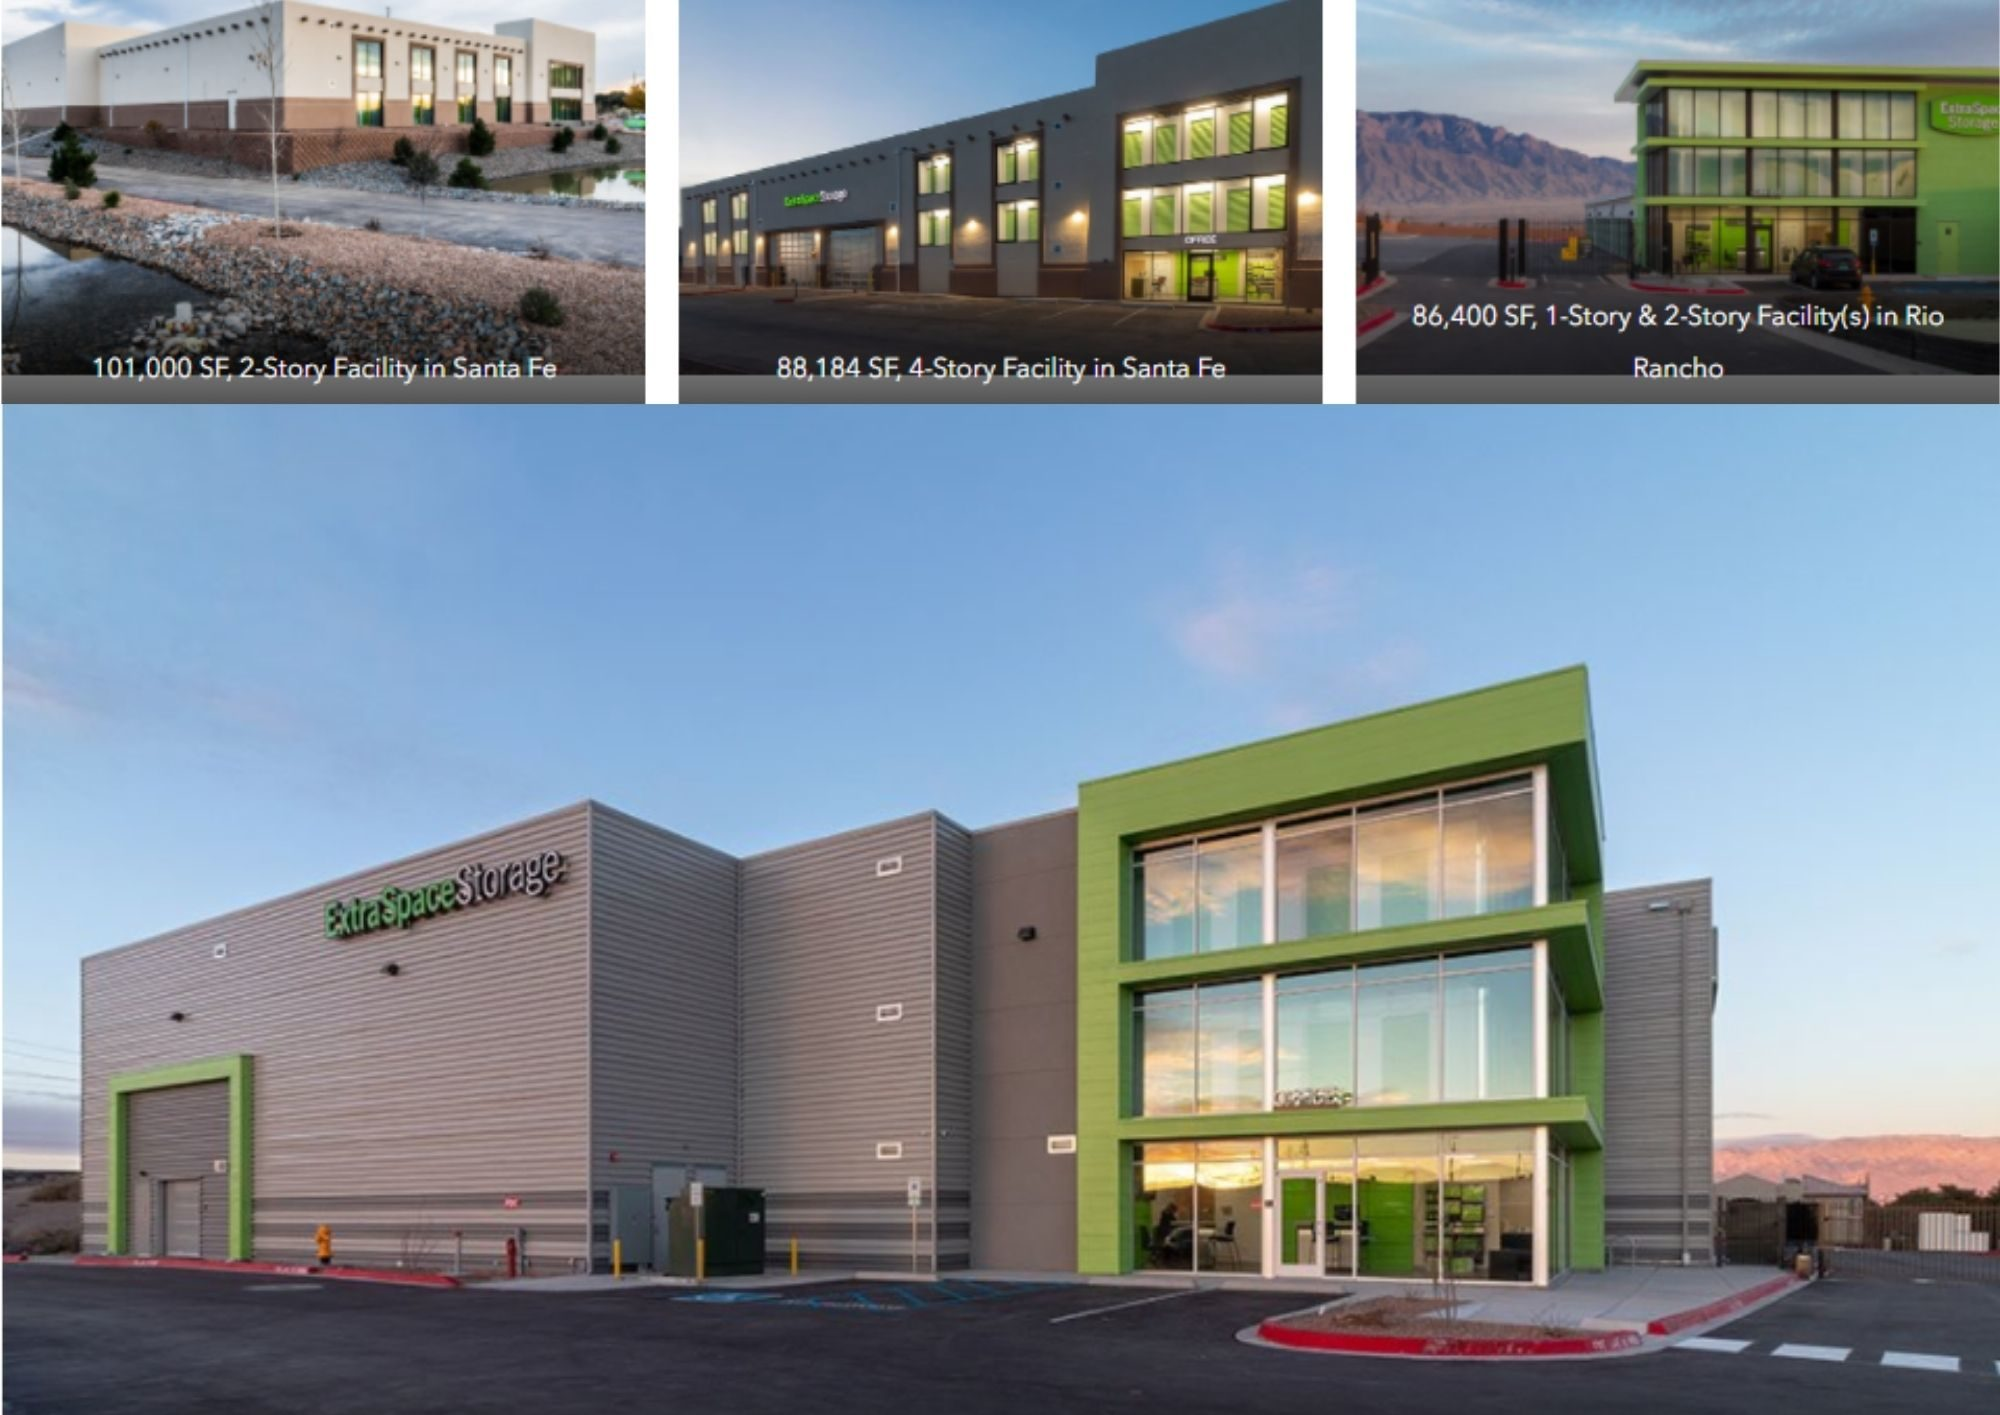 4 Newly Constructed Self Storage Facilities in New Mexico